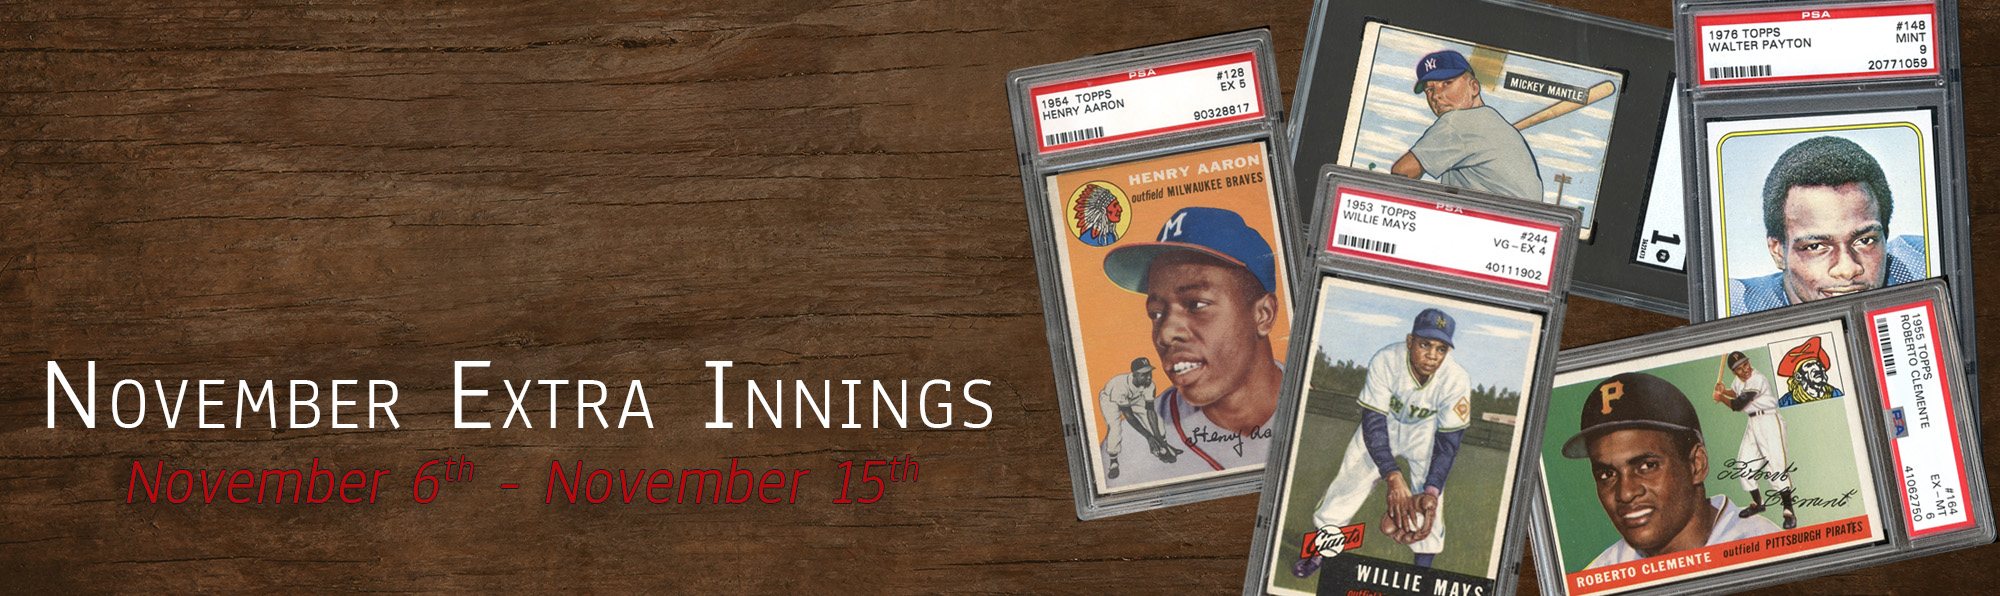 Our November Extra Innings auction opens today at 10:30am EST and runs through December 14th